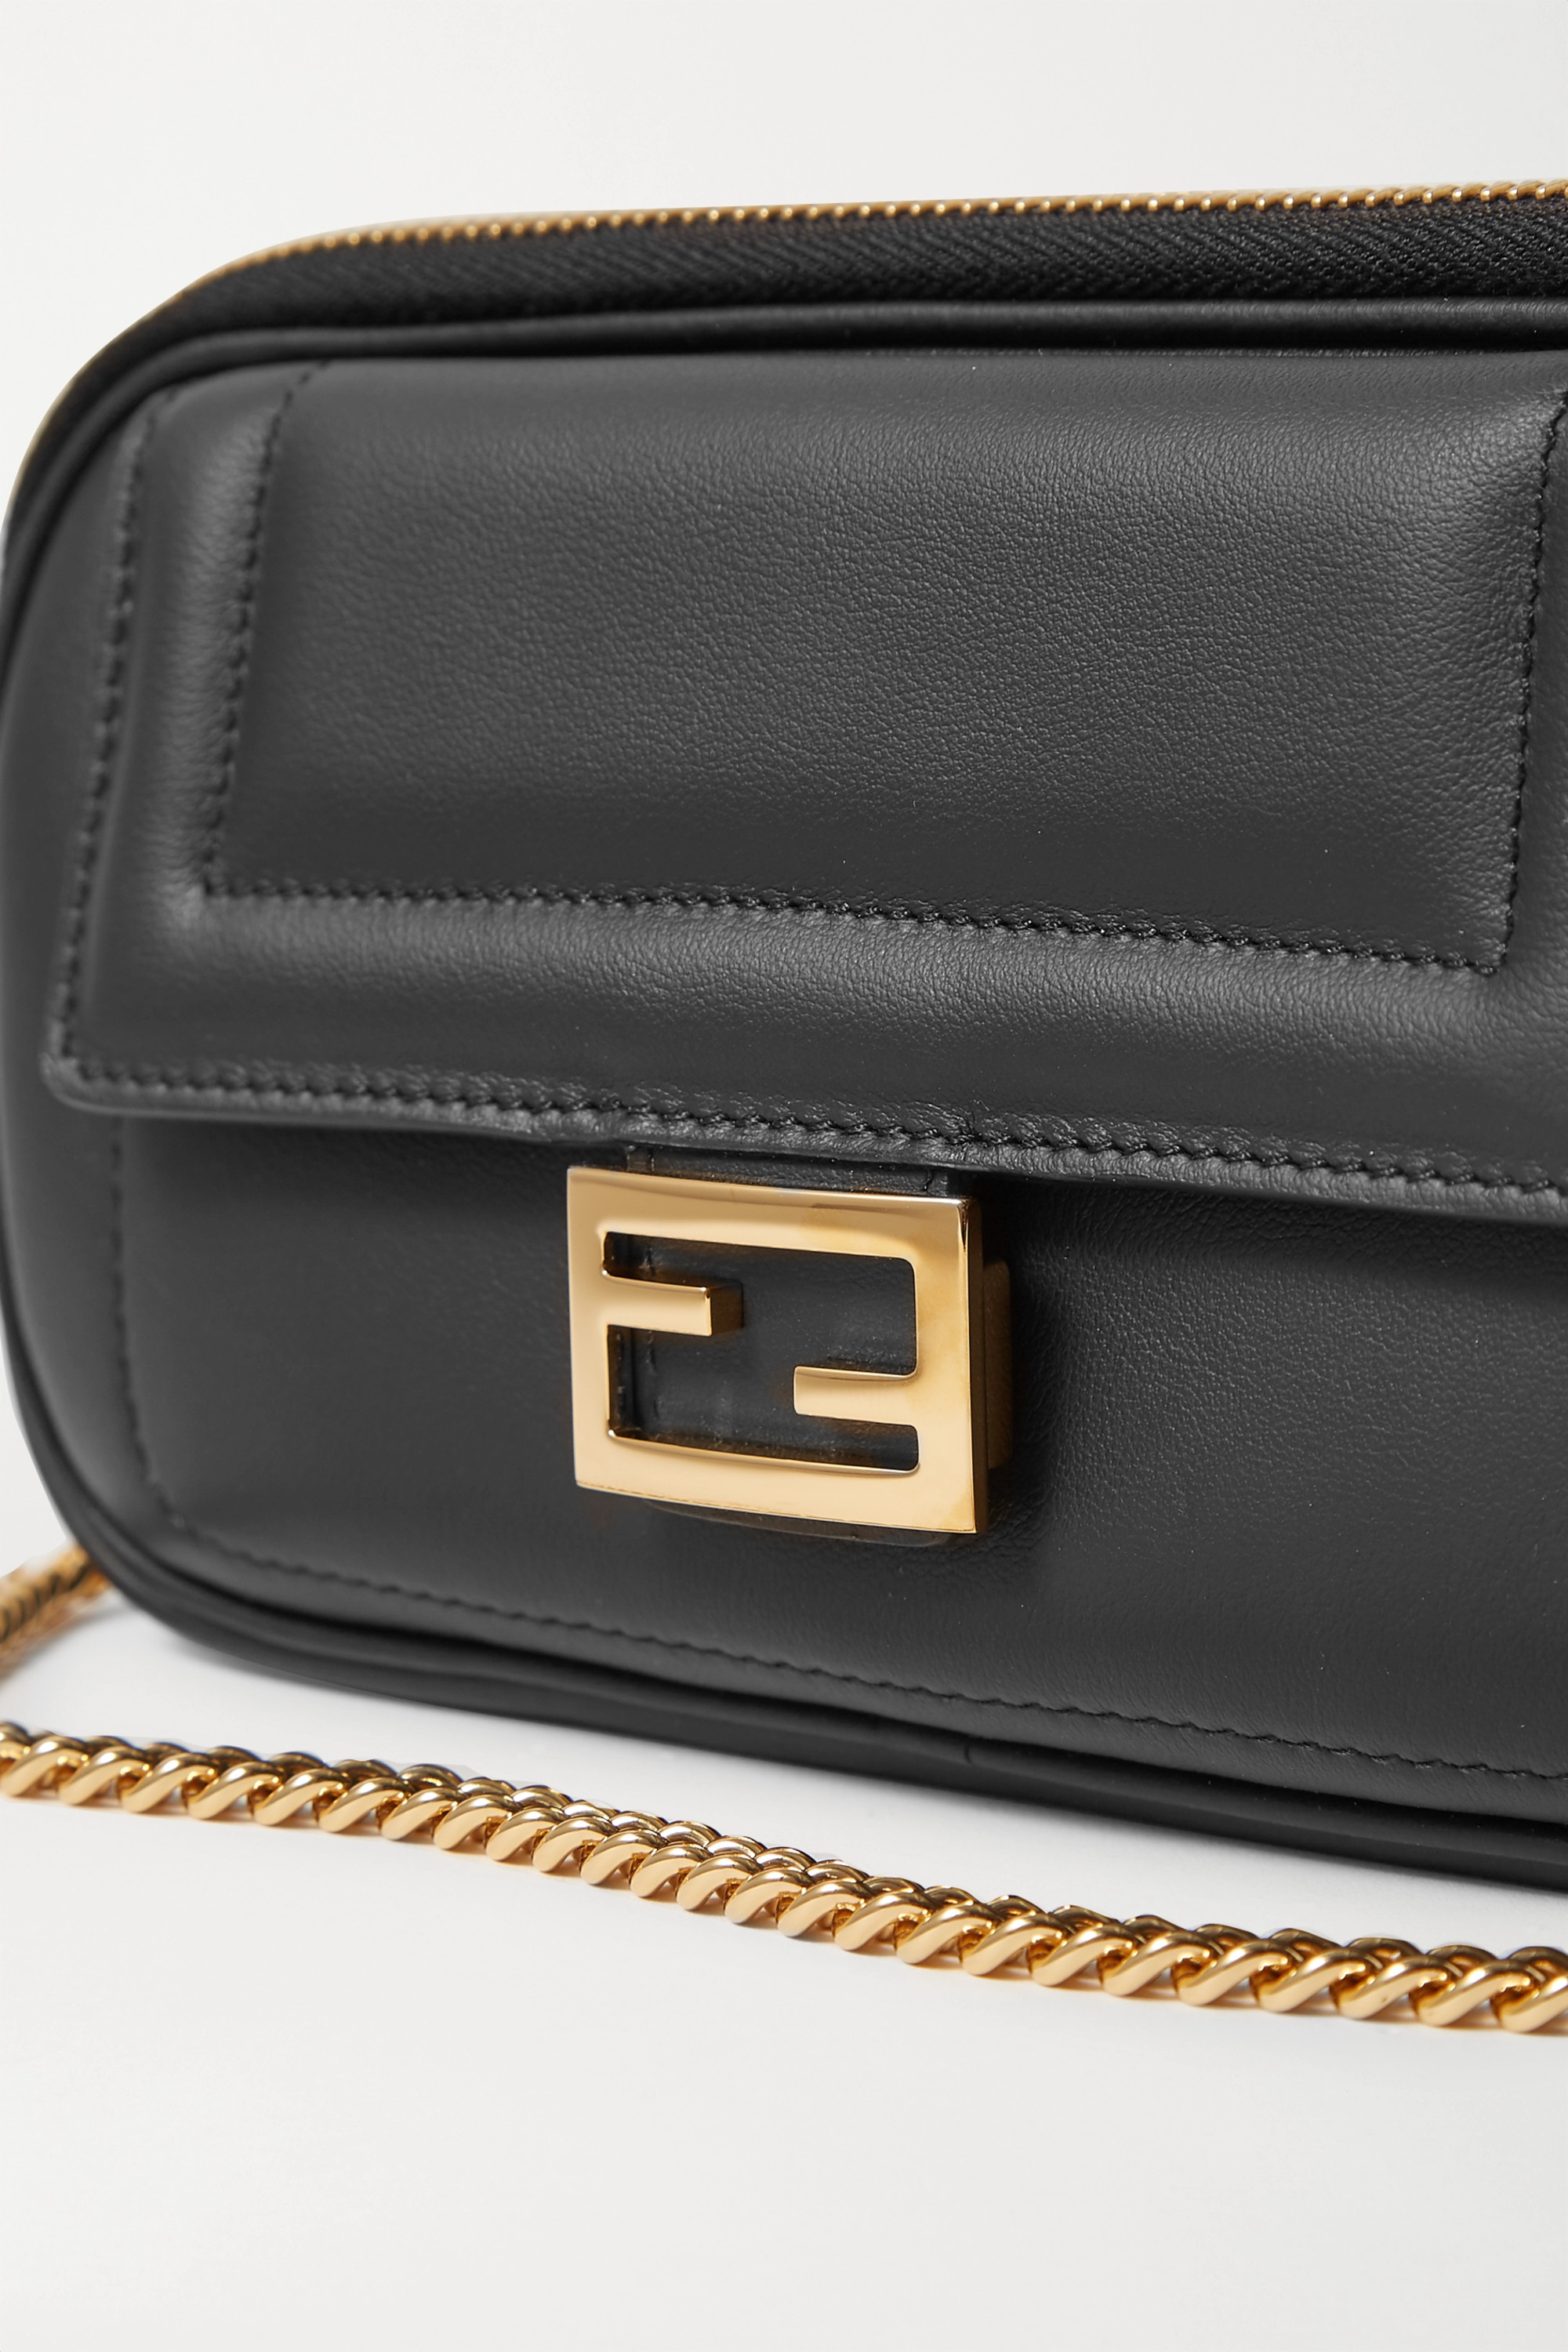 FENDI Easy 2 Baguette leather shoulder bag